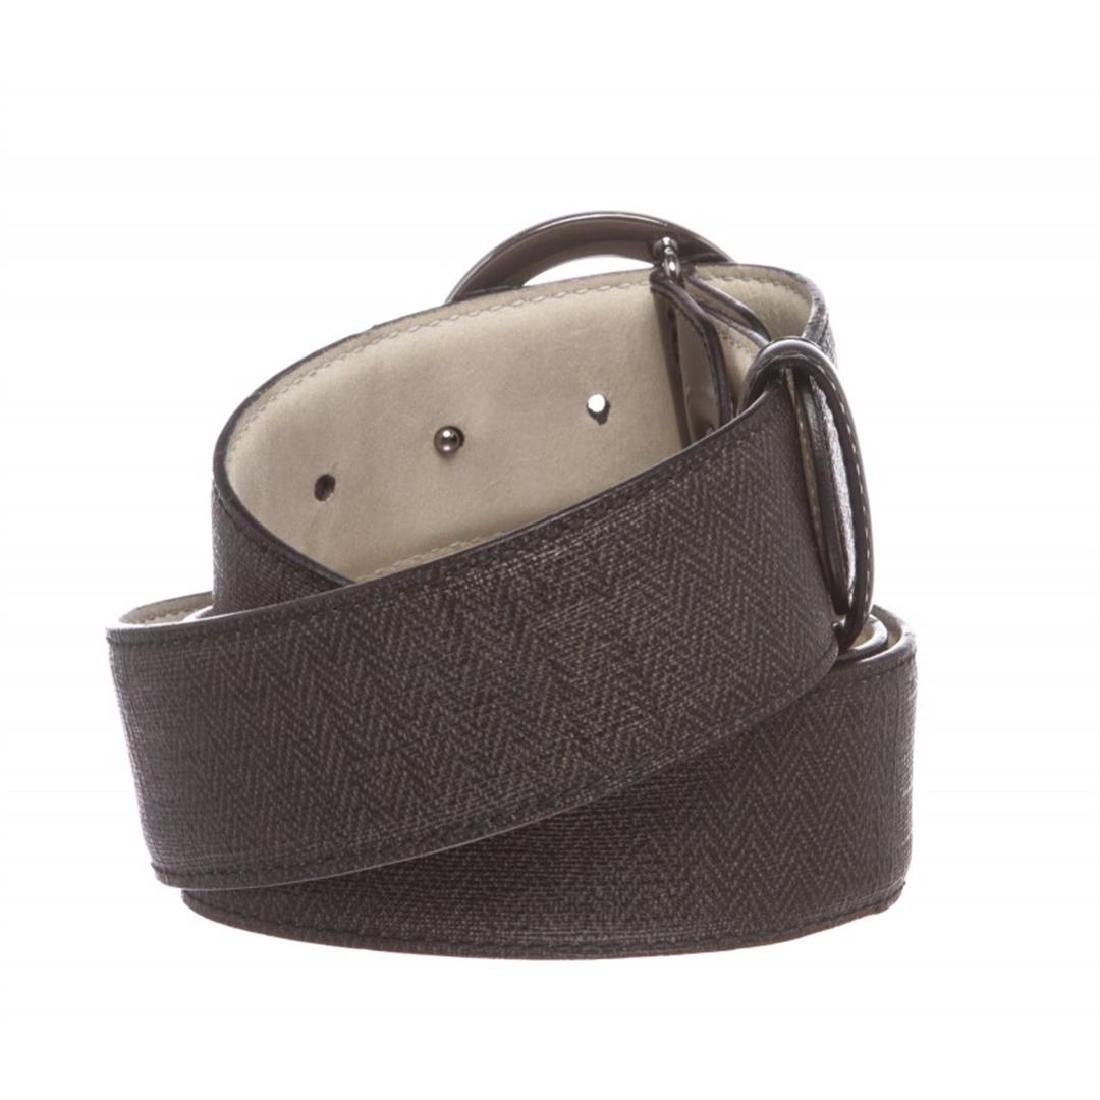 Bvlgari Black Gray Coated Canvas Leather Belt - 3